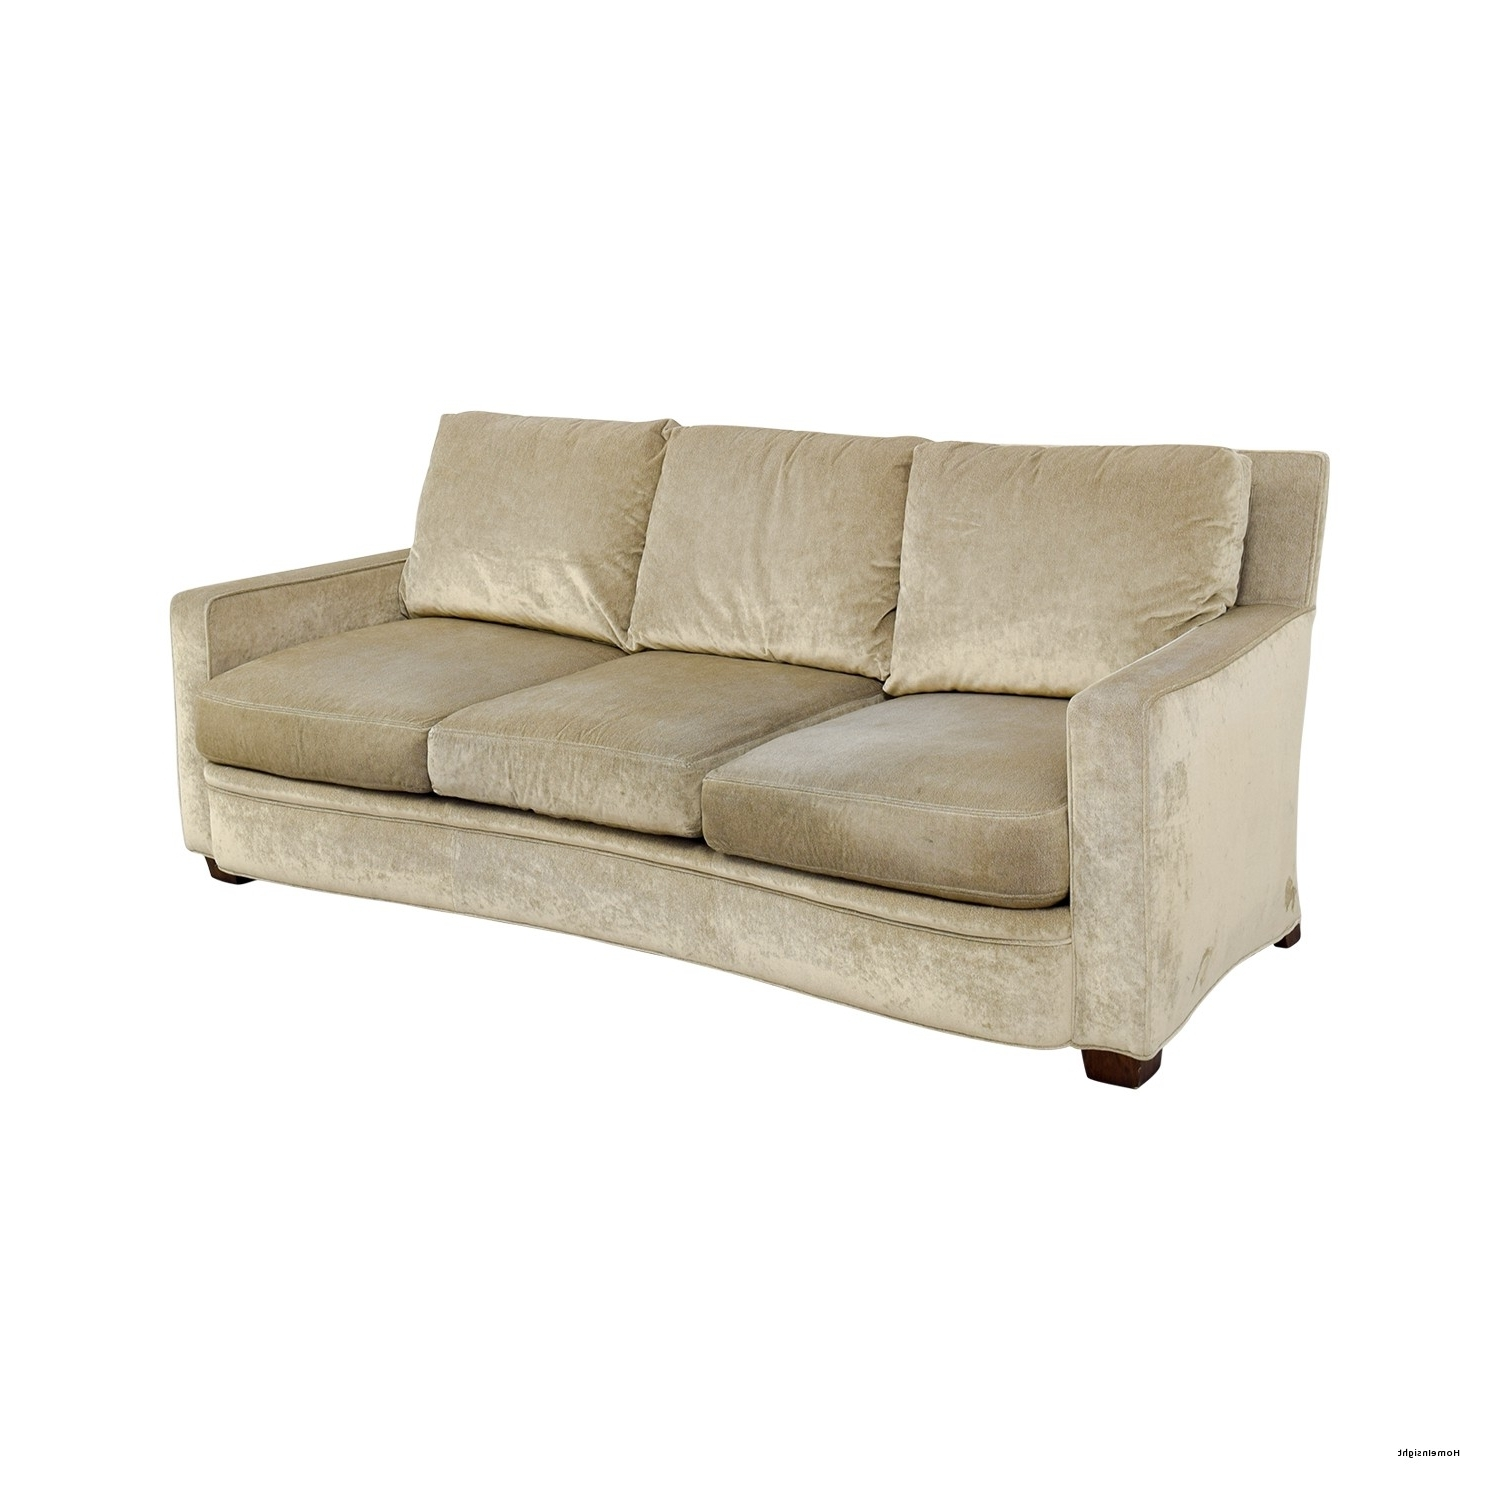 Trendy Awesome Affordable Tufted Sofa (View 10 of 20)